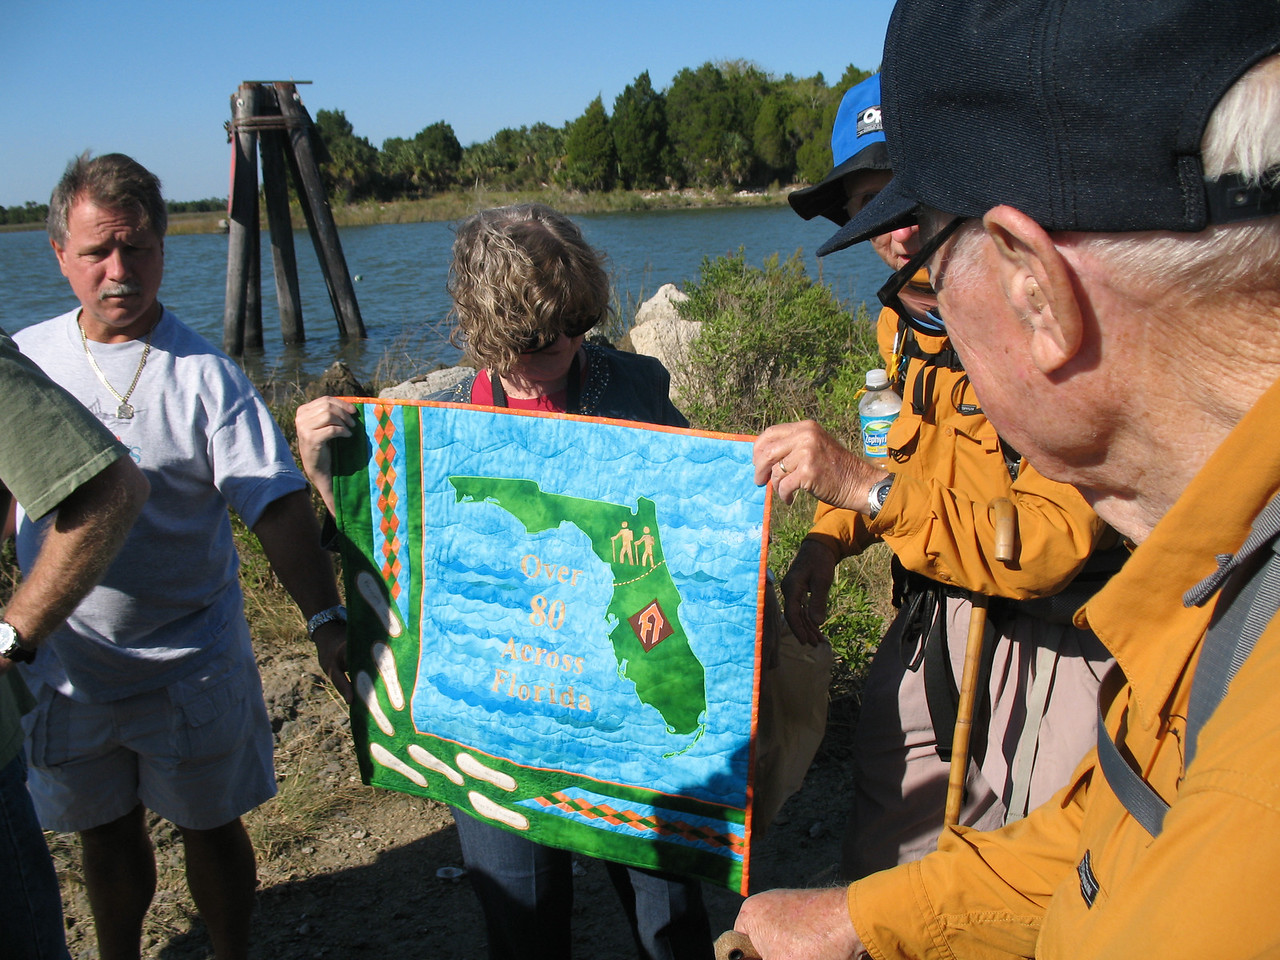 Ken\'s daughter presents him with a commemorative quilt she created